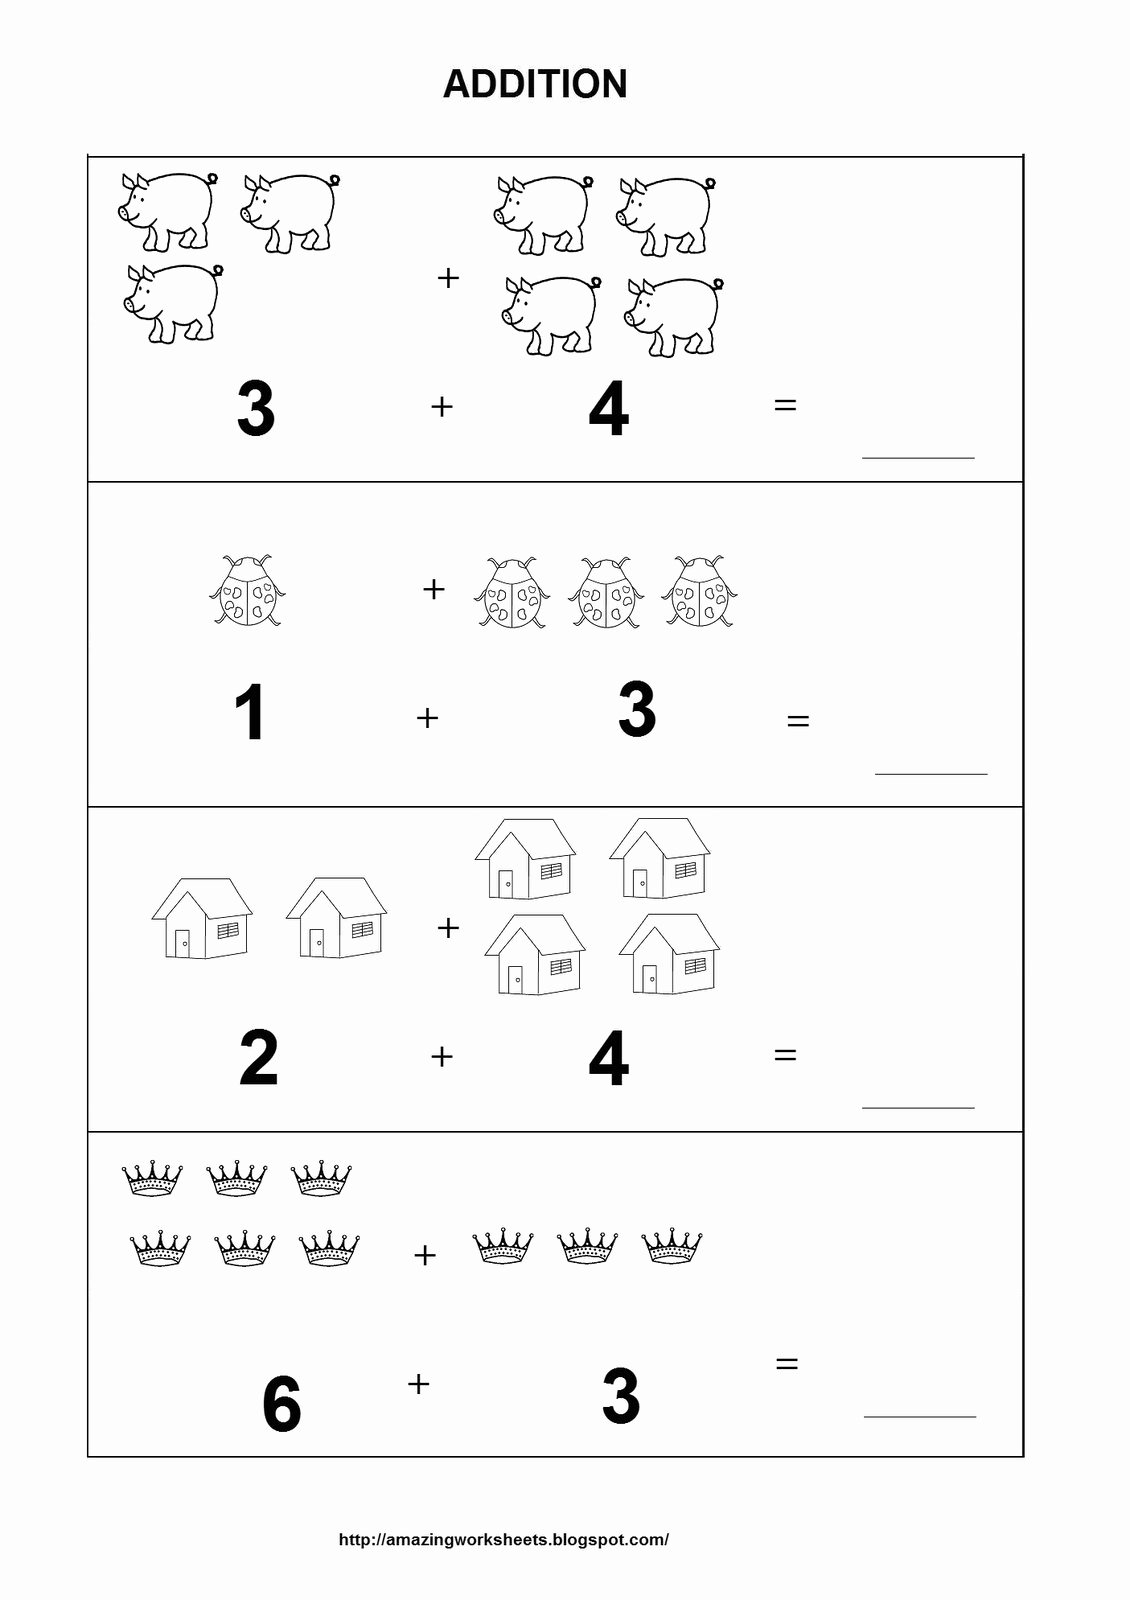 Easy Worksheets for Preschoolers Lovely Math Worksheet Outstanding Easy Worksheets for